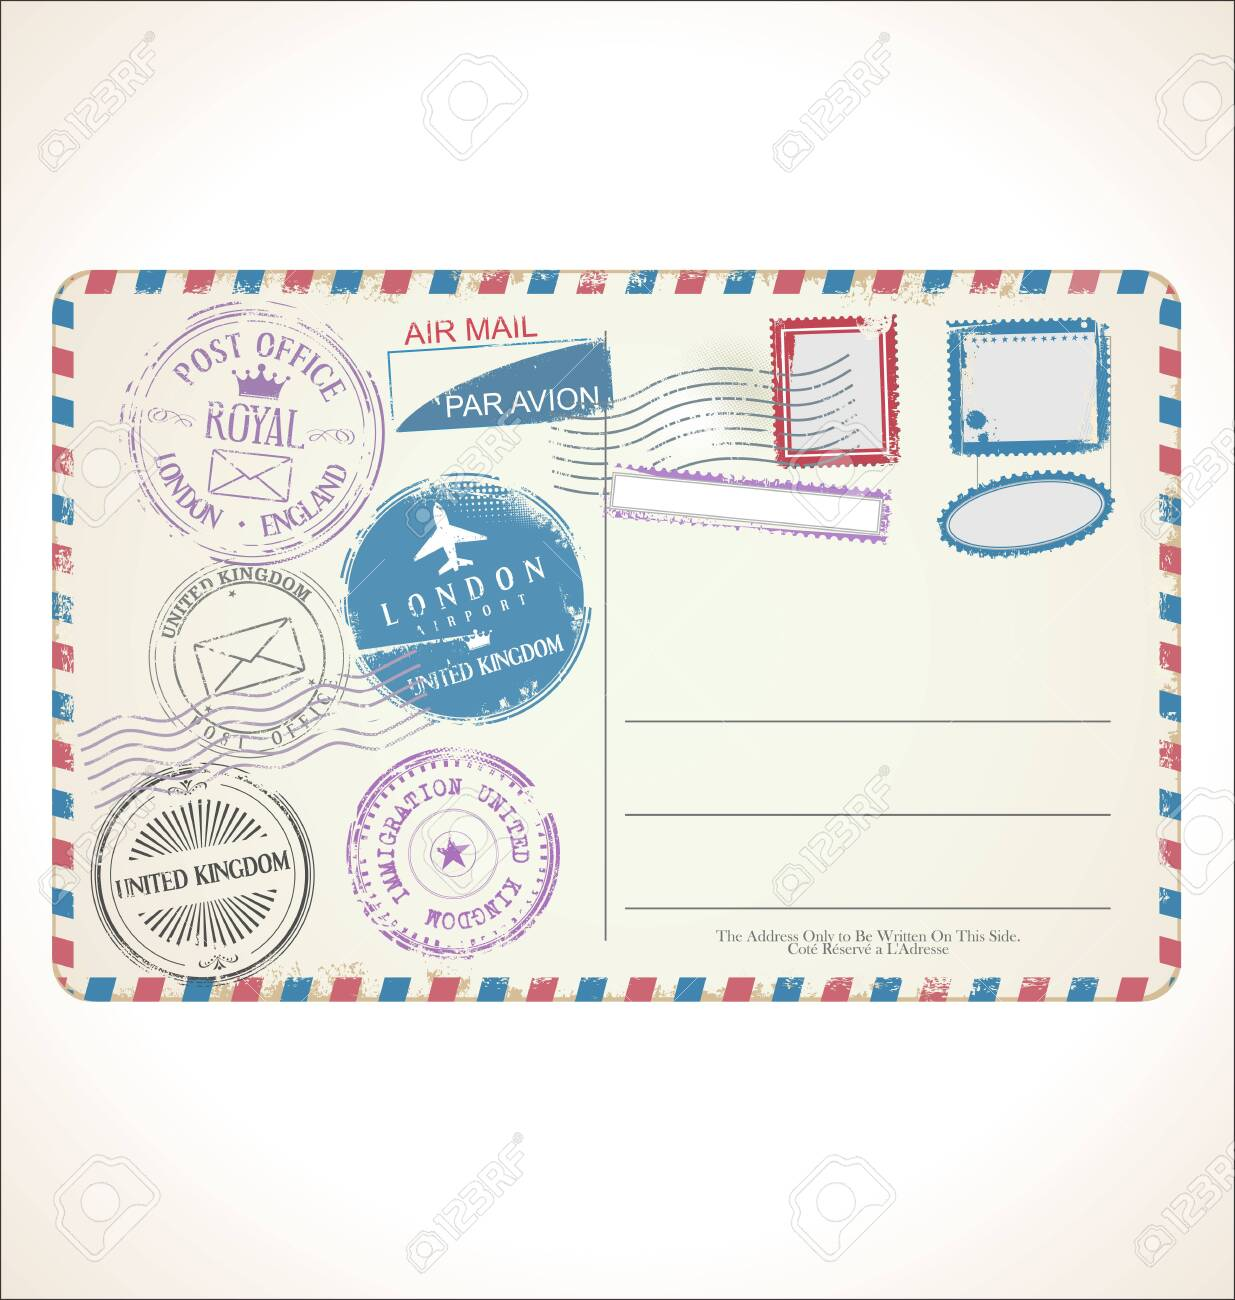 Postal stamp and post card on white background mail post office air mail - 125507371